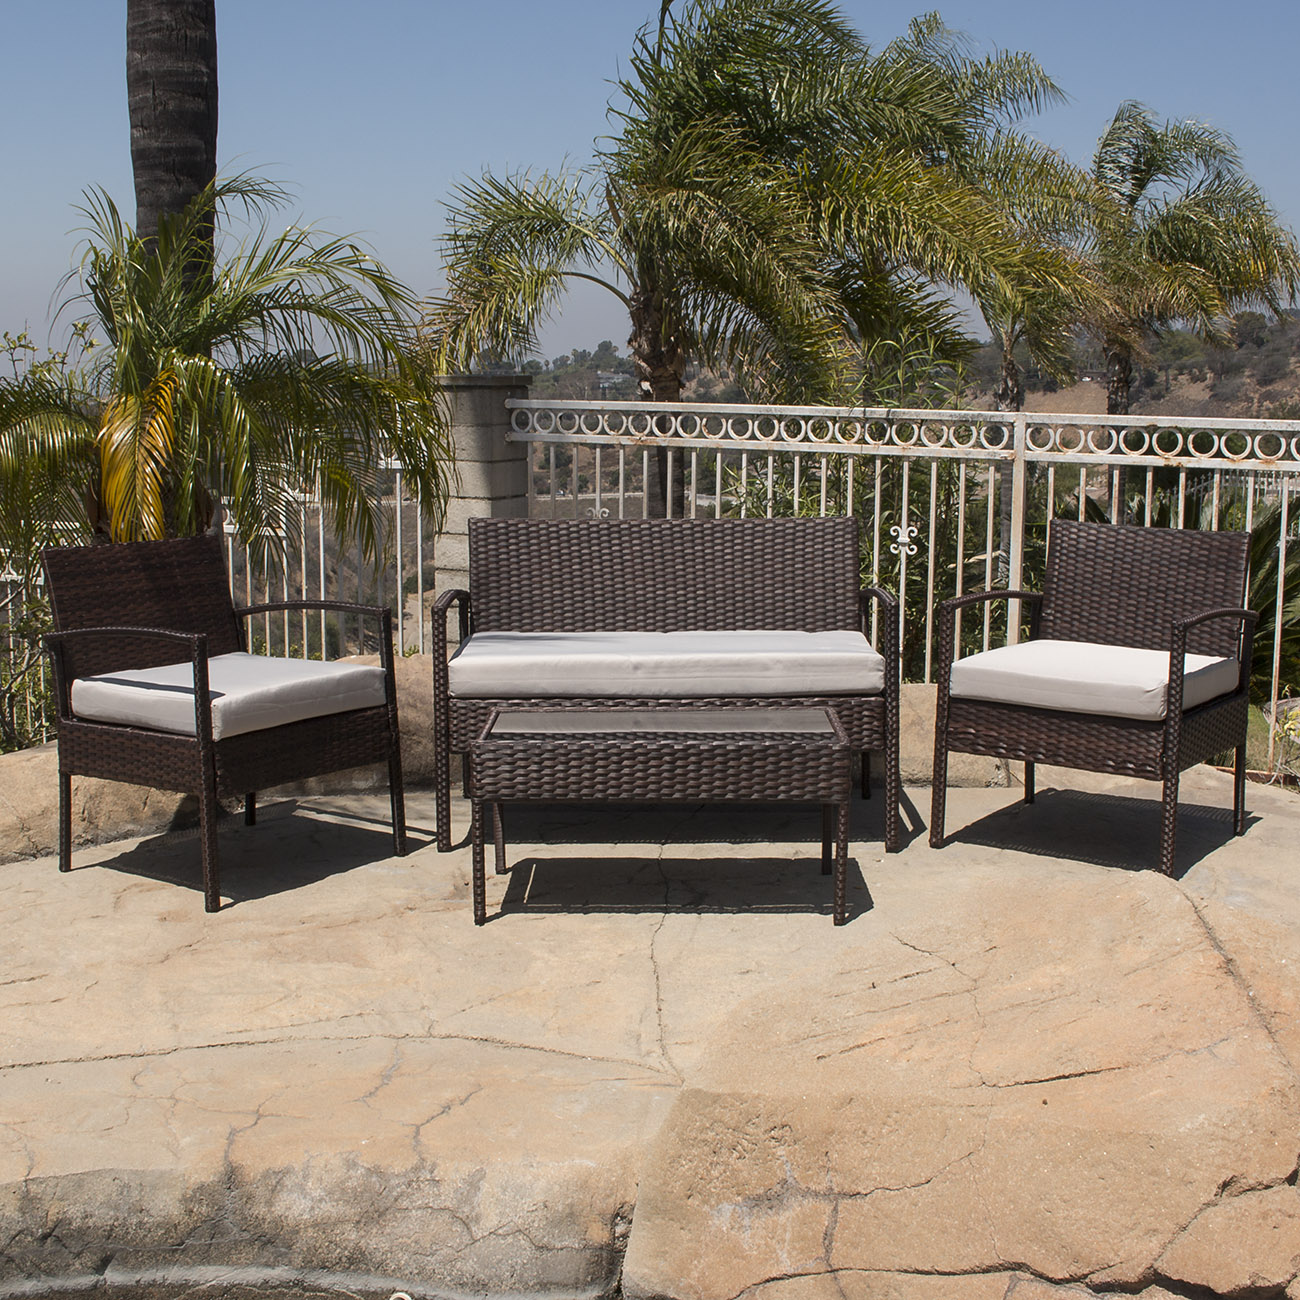 PC Rattan Wicker Patio Furniture Set Sofa Chair Table Cushioned - Wicker patio furniture sets